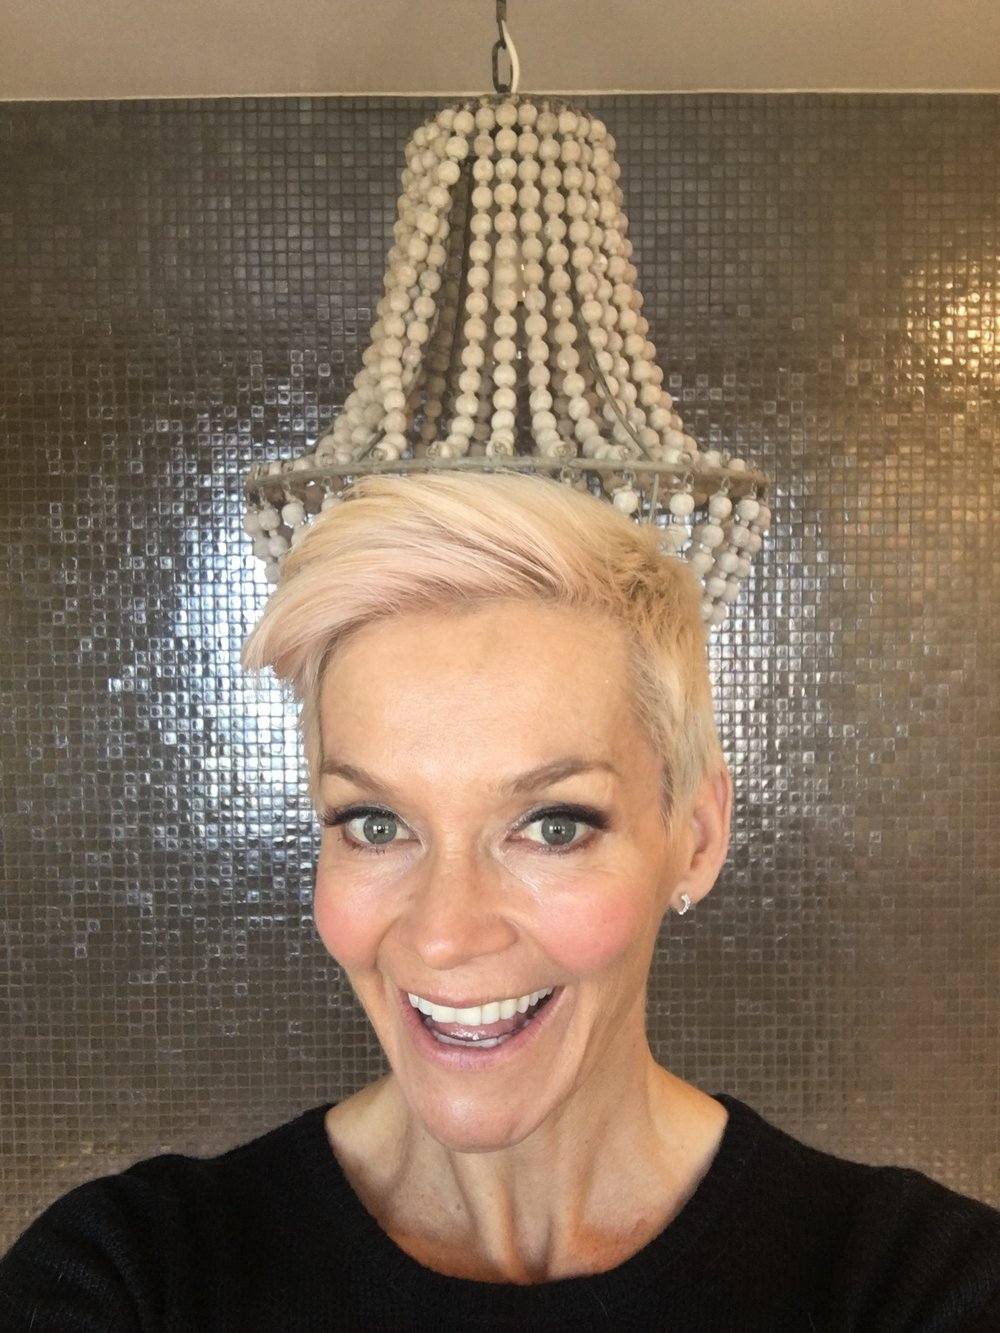 Fresh- a week after Botox! (do you like the chandelier growing out of my head??)